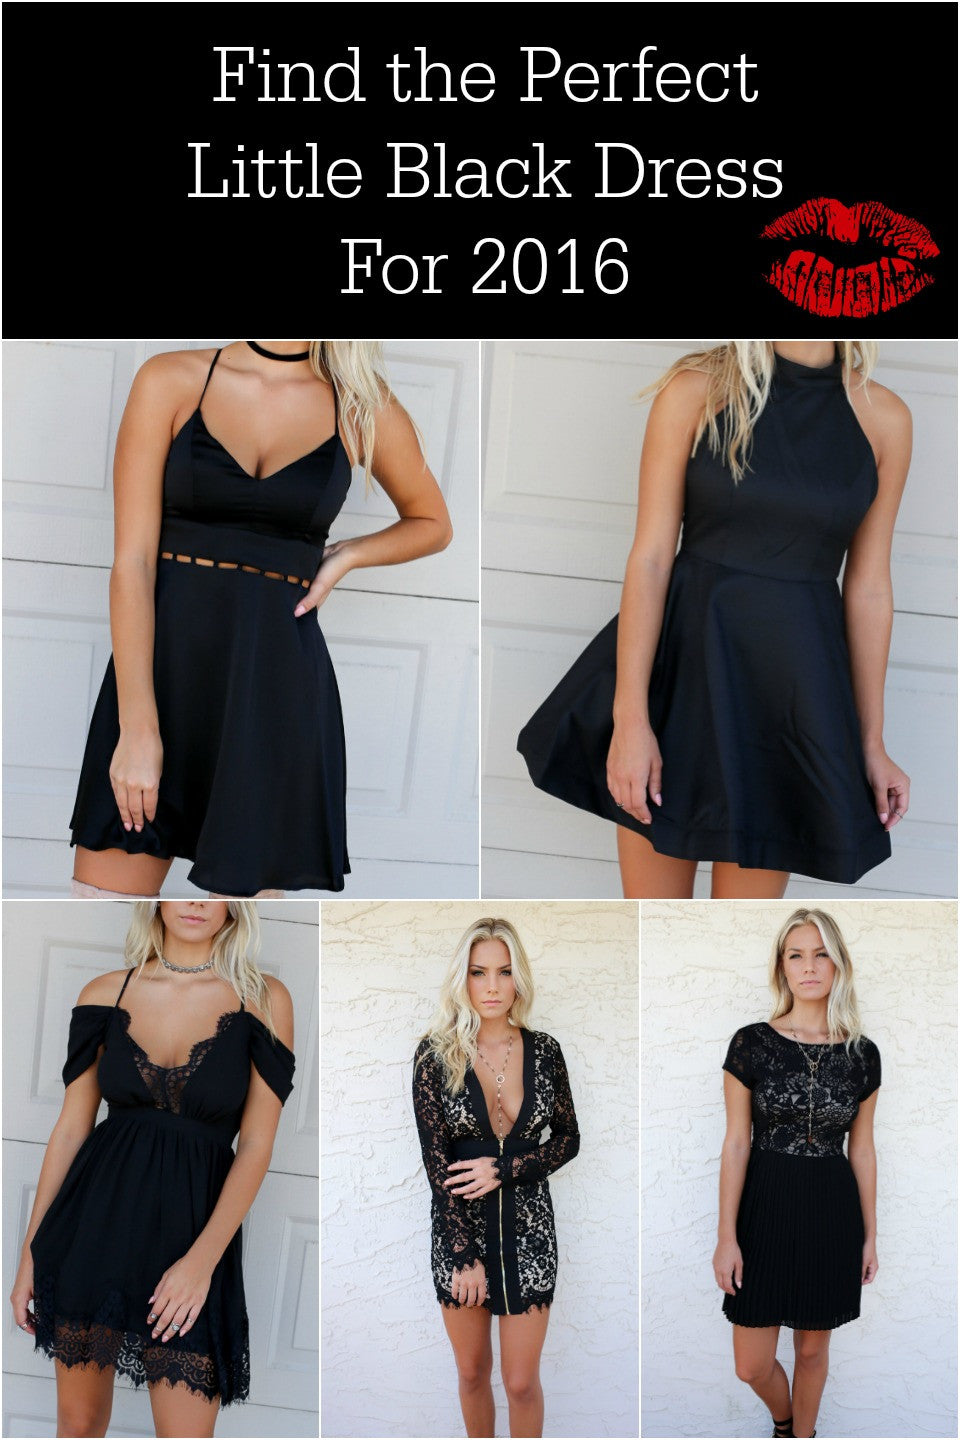 Find the Perfect Little Black Dress for 2016